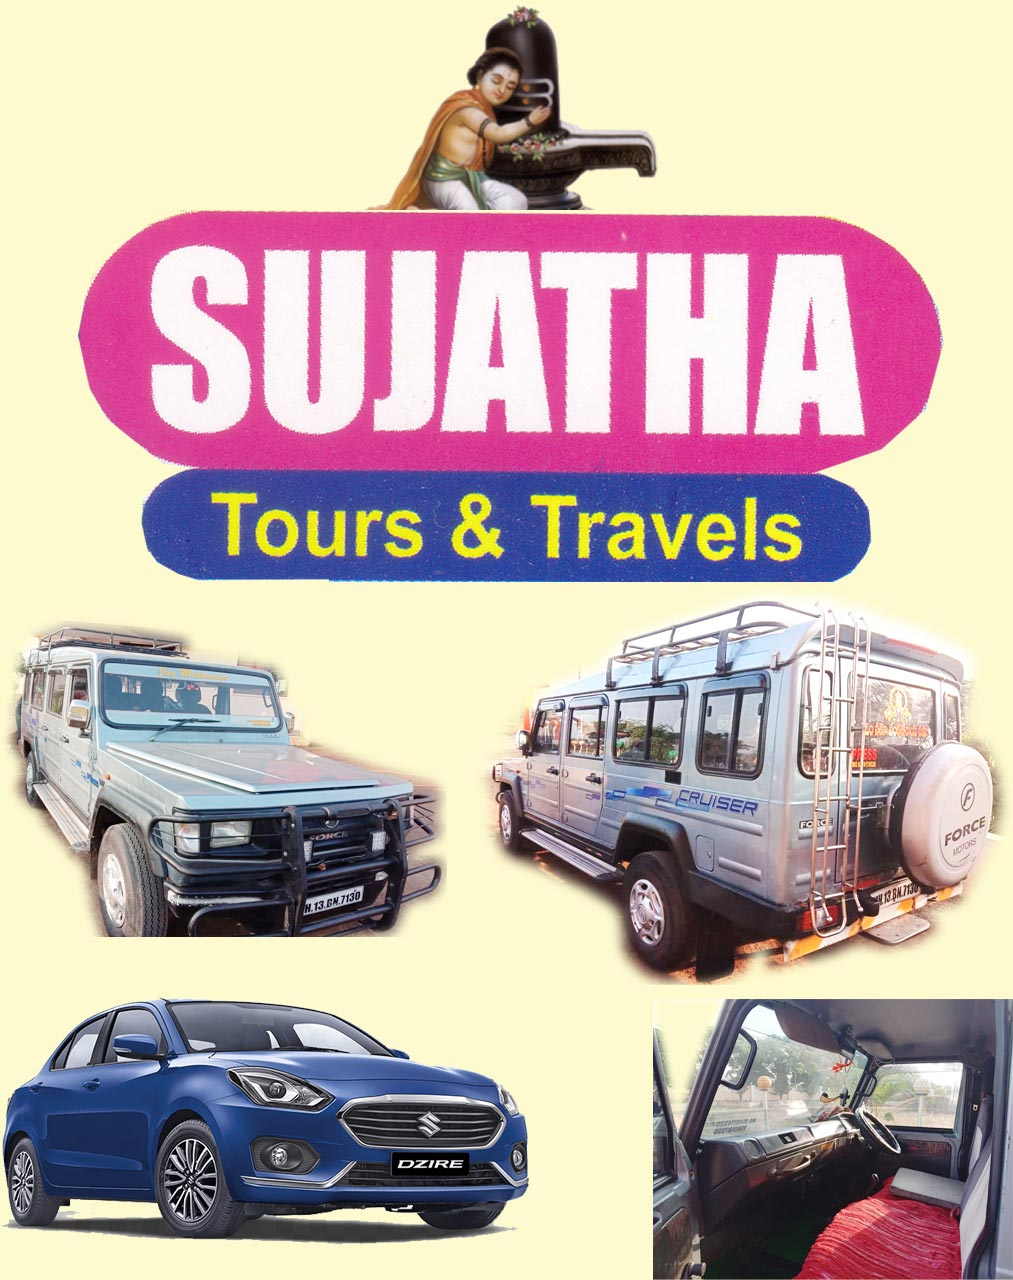 SUJATA TOURS & TRAVELS